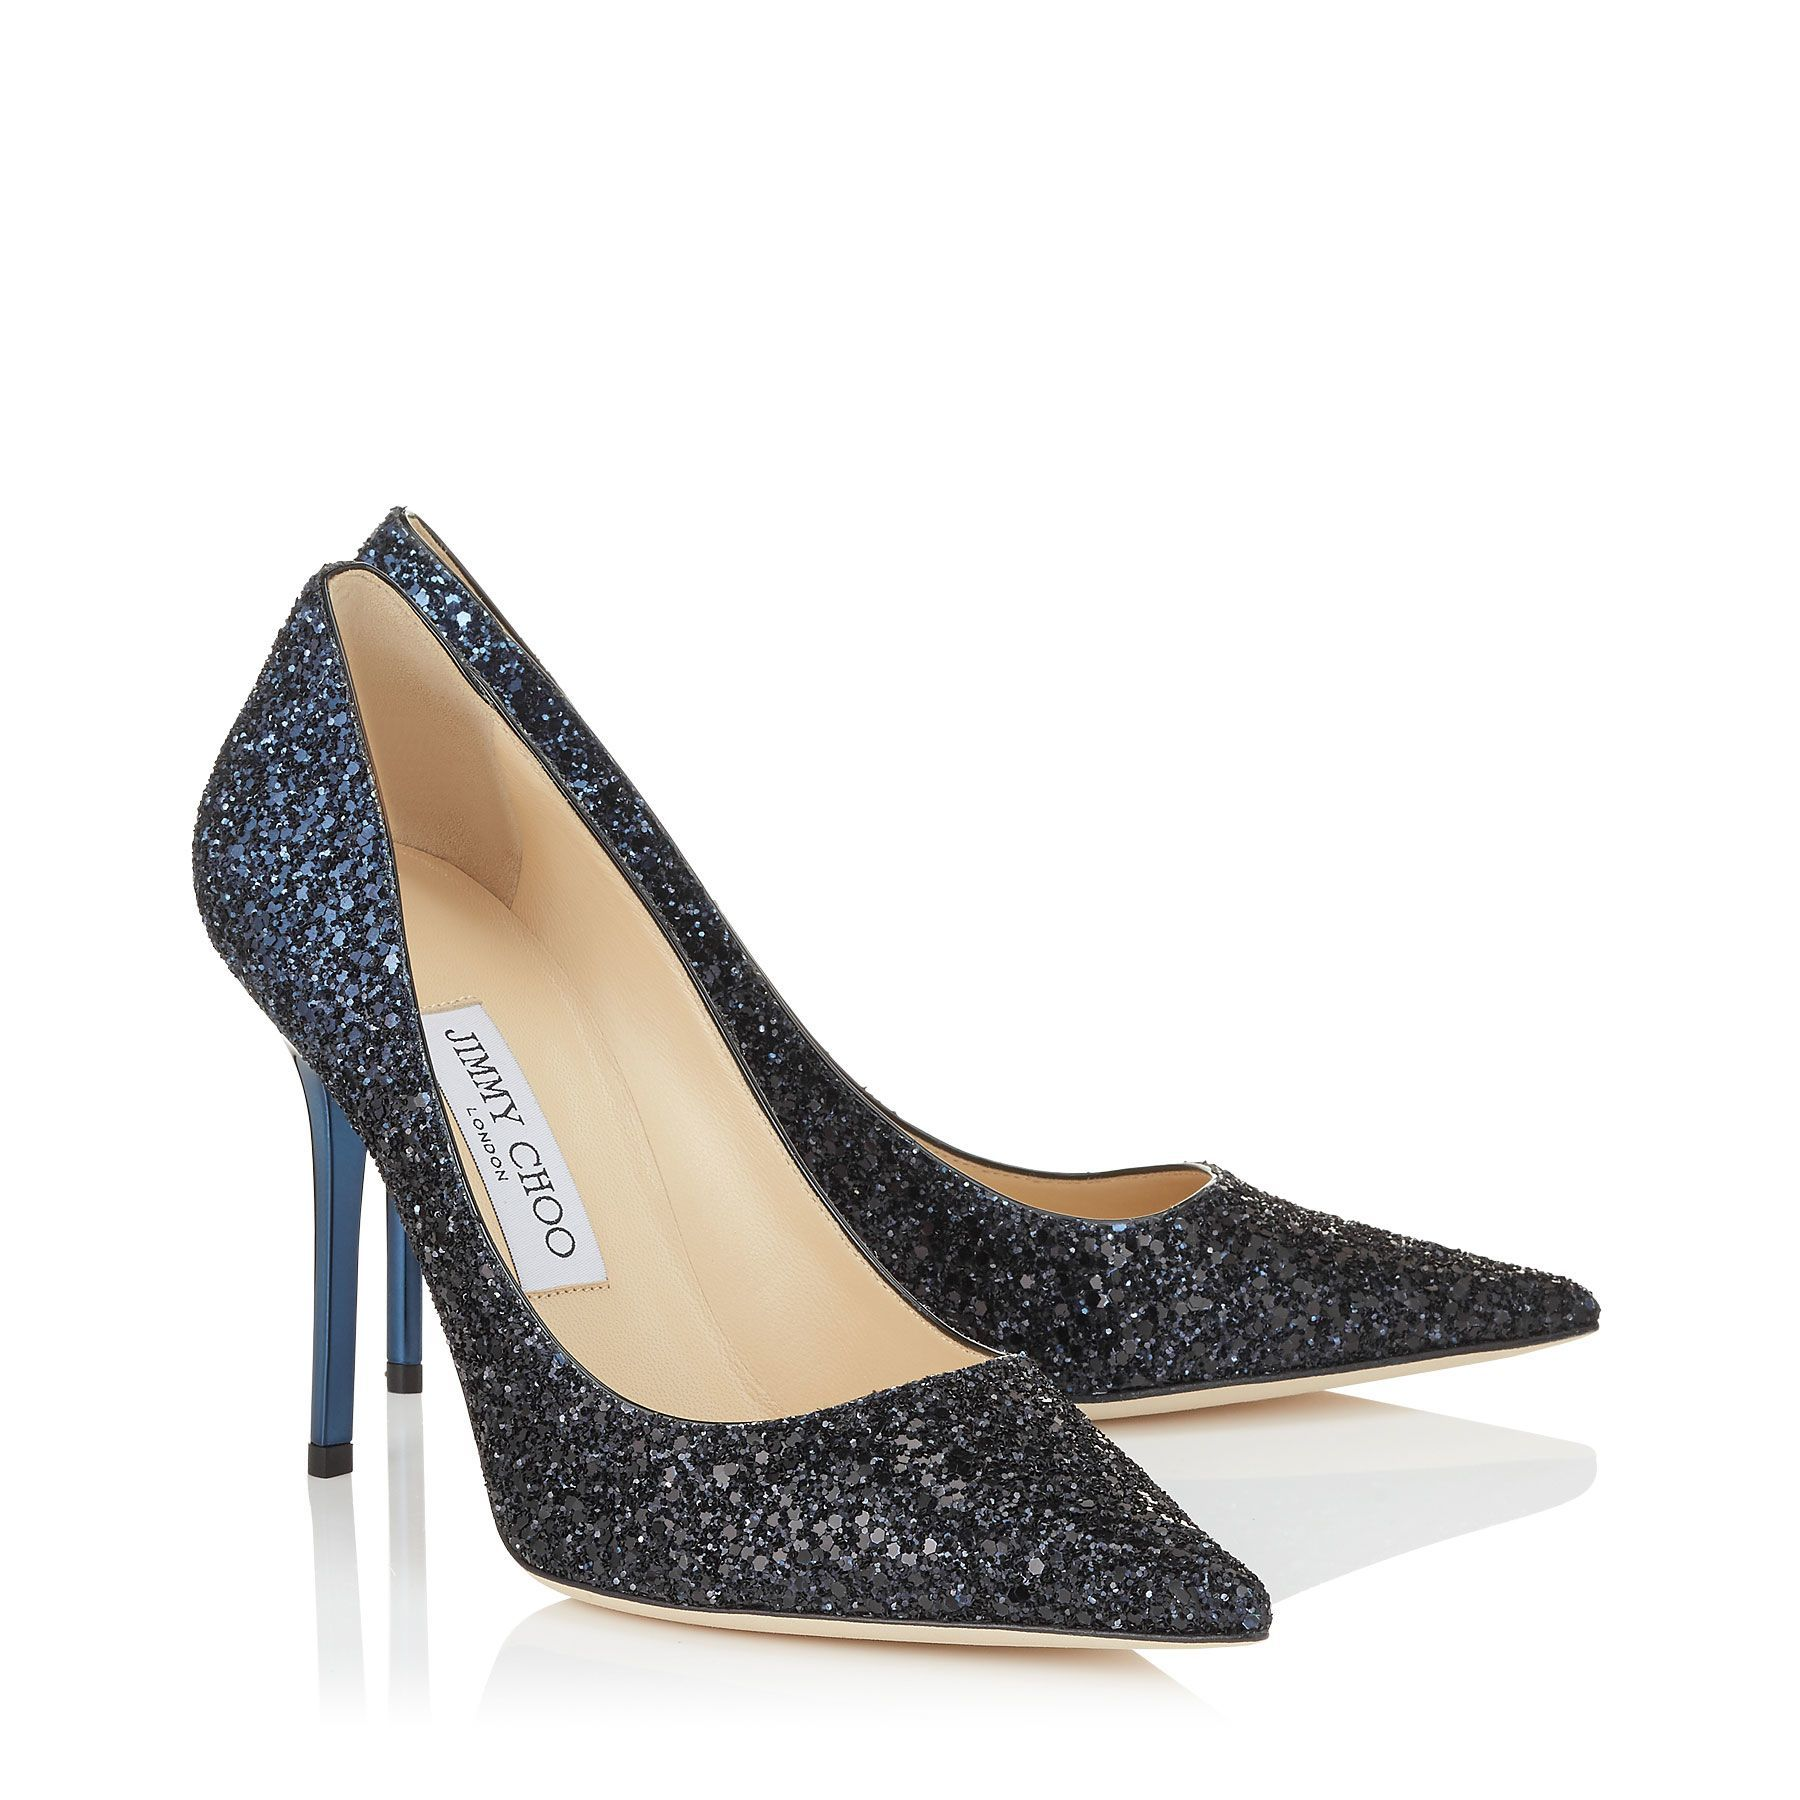 7e5679b104d ... jimmy choo · black and navy coarse glitter degrade fabric pointy toe  pumps ...